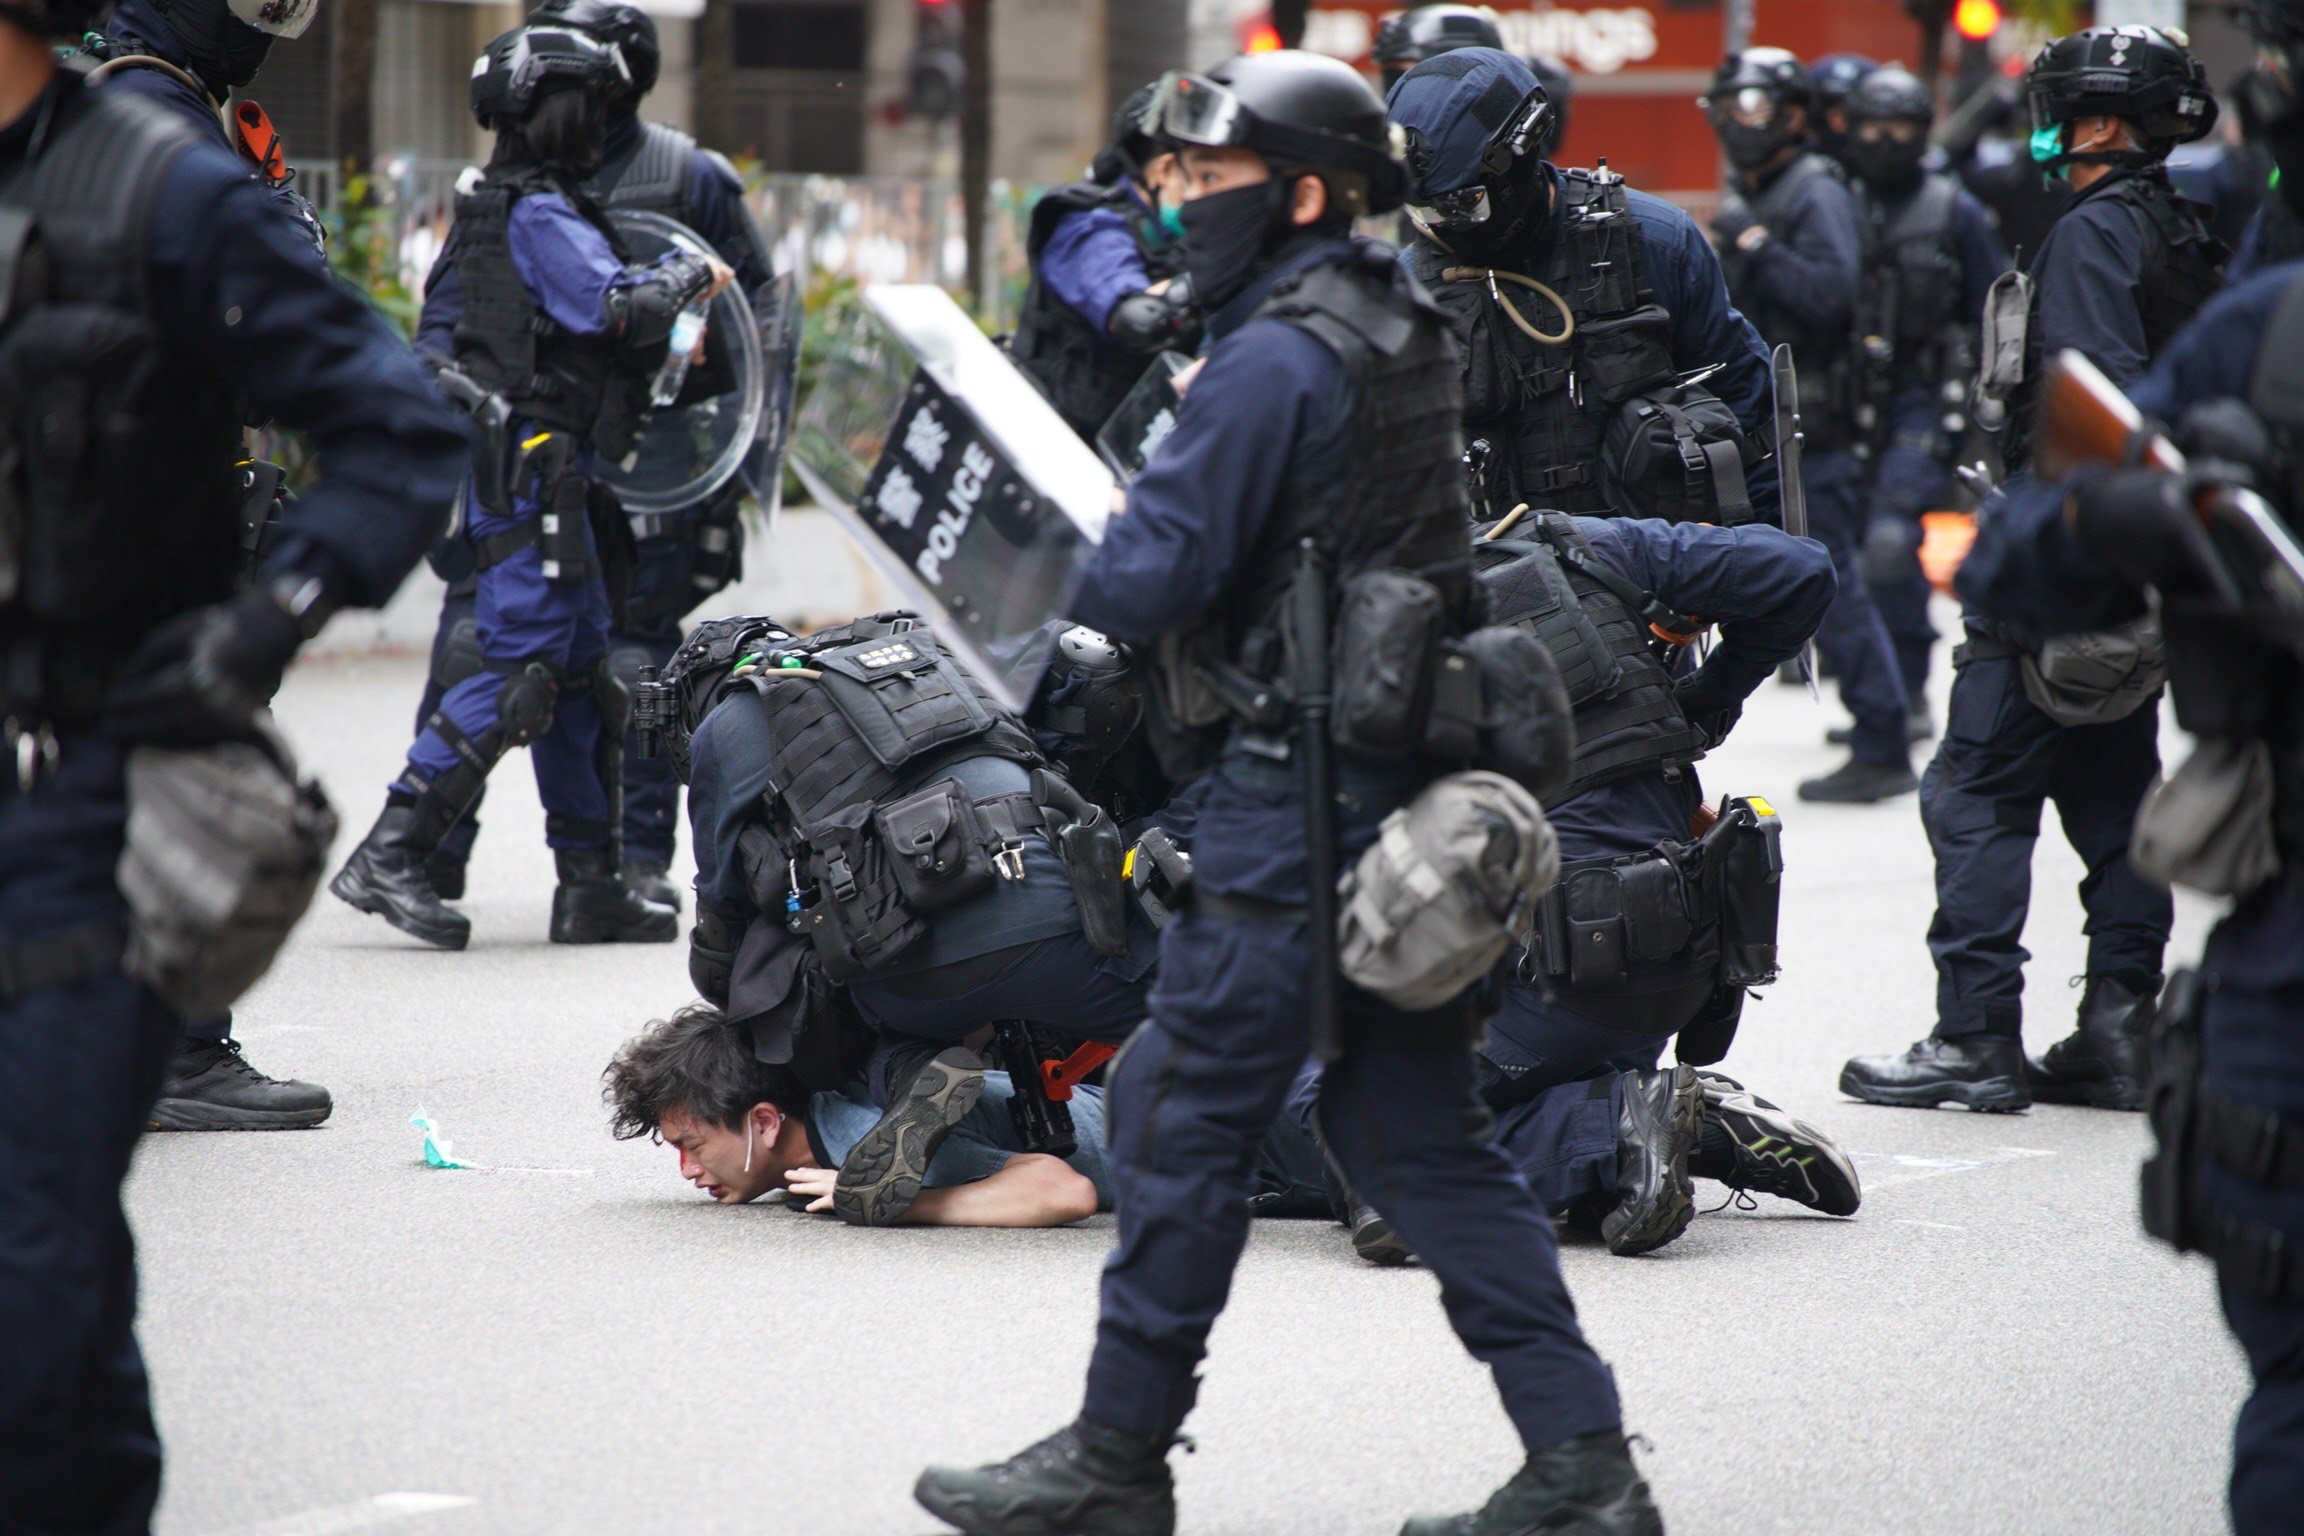 Police special tactical squad detain a protester (C) in Wanchai, Hong Kong on May 24, 2020, as thousands of demonstrators took to the streets to protest against a national security law. (AFP Photo)